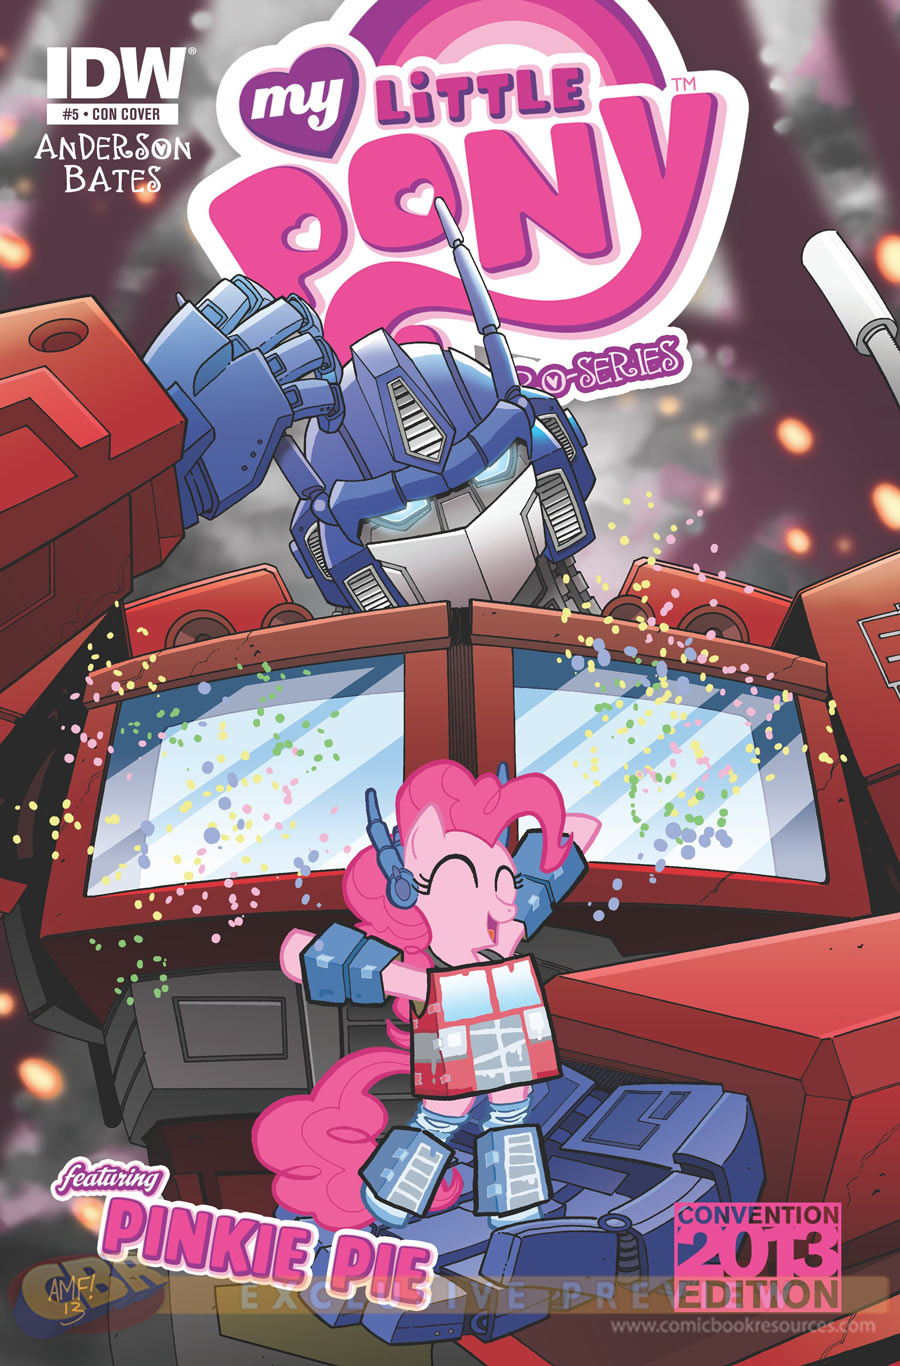 Exclusive Transformers x My Little Pony Crossover Comic Cover Revealed